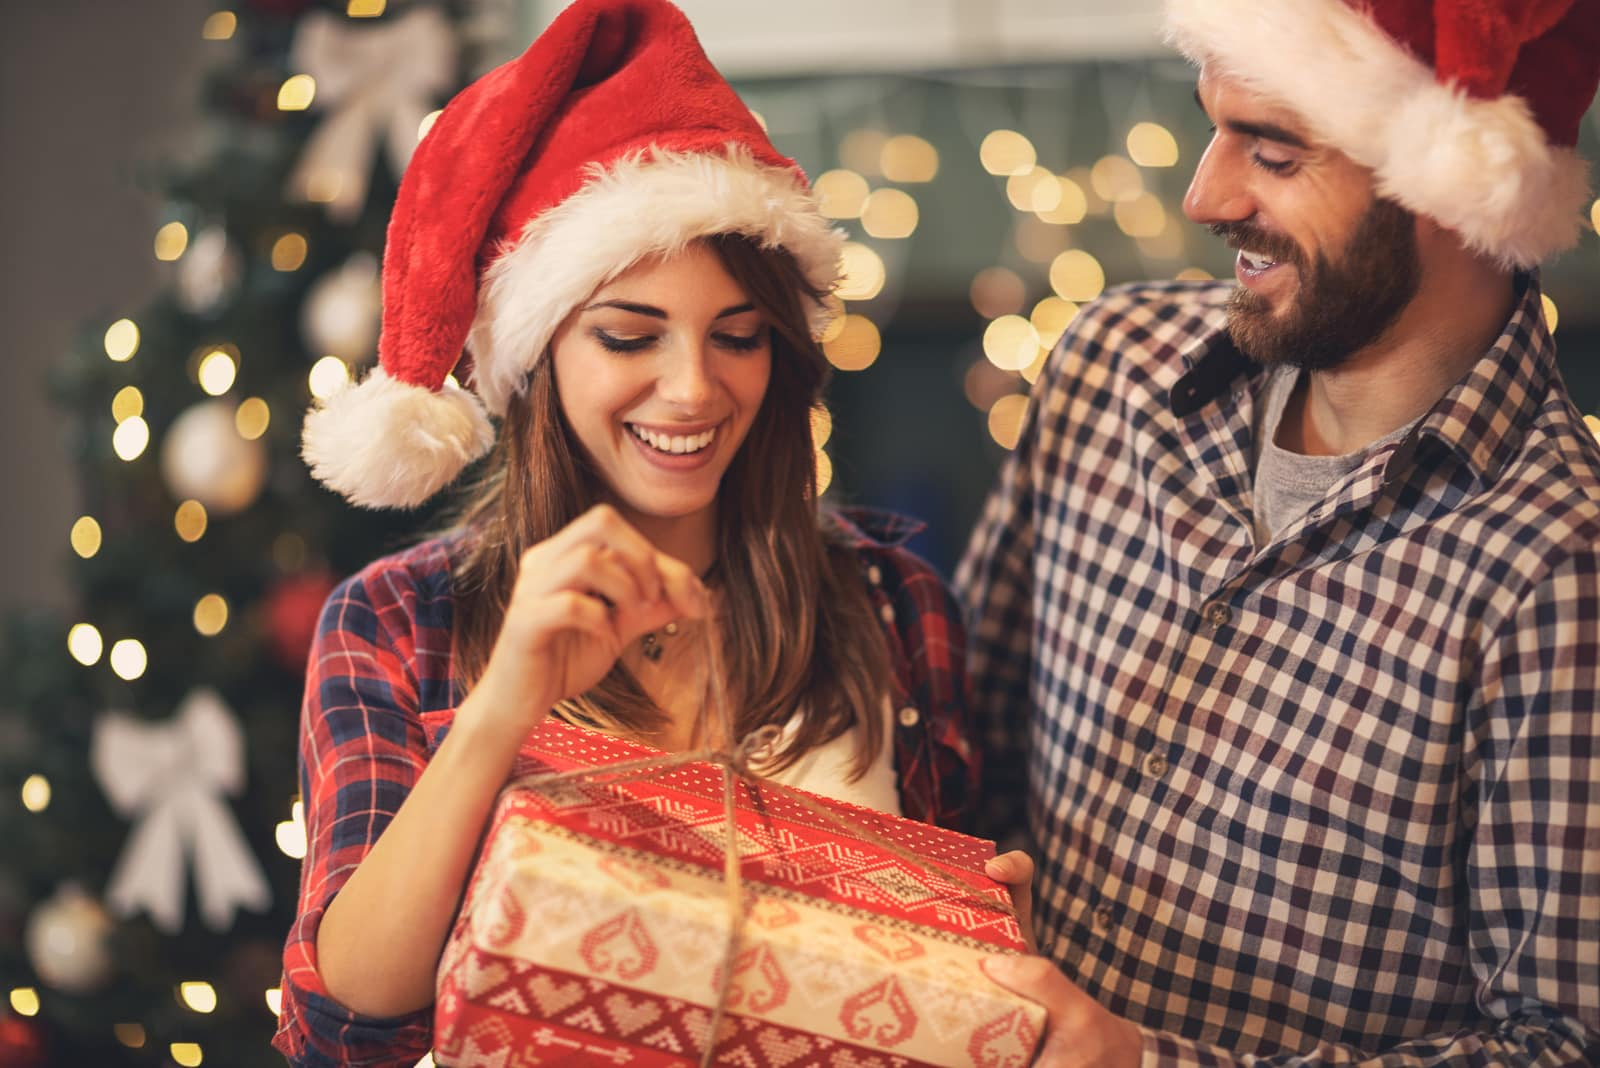 This Is Your Perfect Christmas Gift Based On Your Zodiac Sign